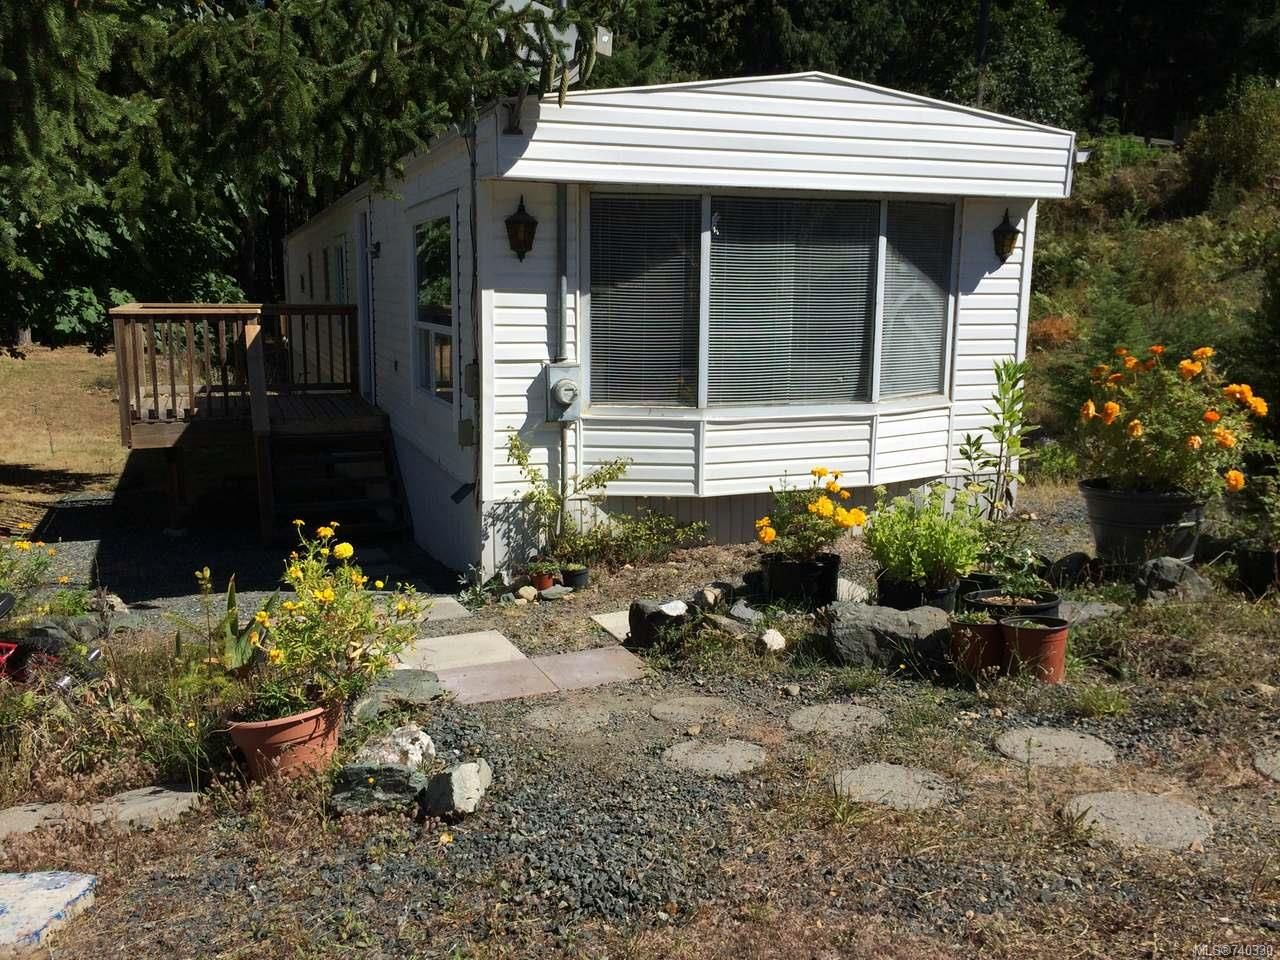 Main Photo: 3877 MELROSE ROAD in HILLIERS: PQ Errington/Coombs/Hilliers Manufactured Home for sale (Parksville/Qualicum)  : MLS®# 740330